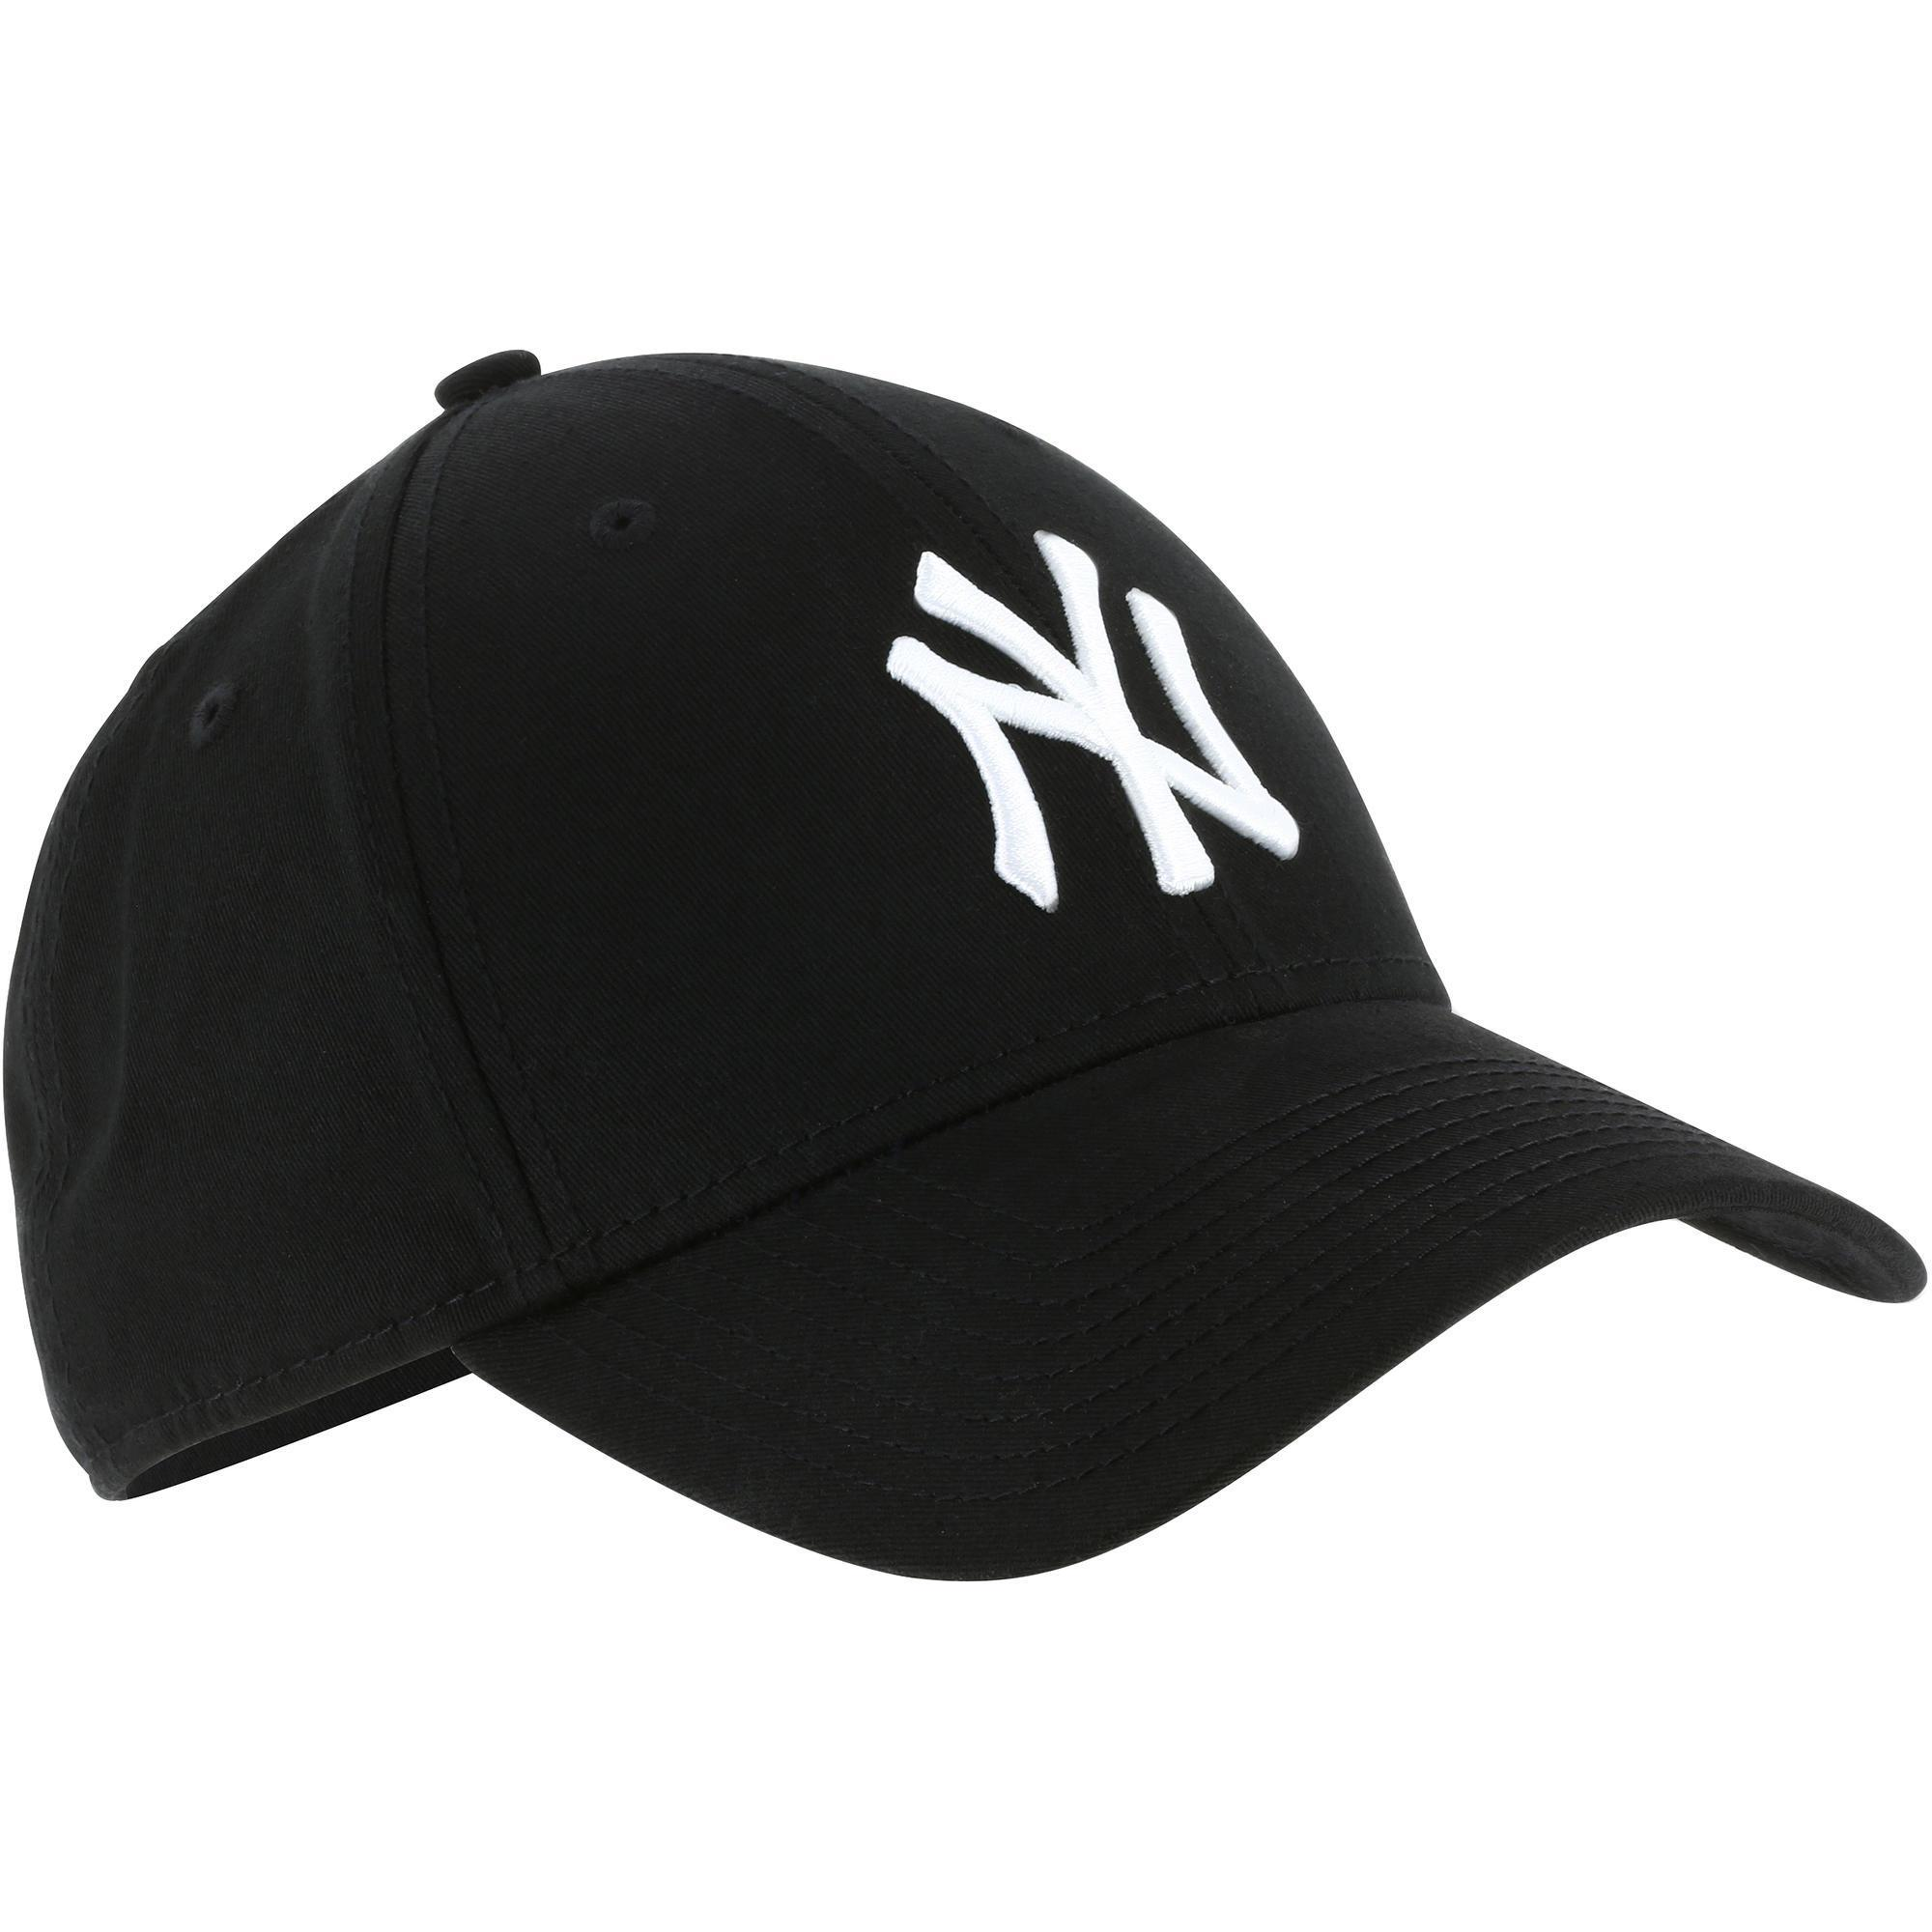 0b938d5a4676c Gorra Plana de Béisbol para Adultos New York Yankees Negro New era ...